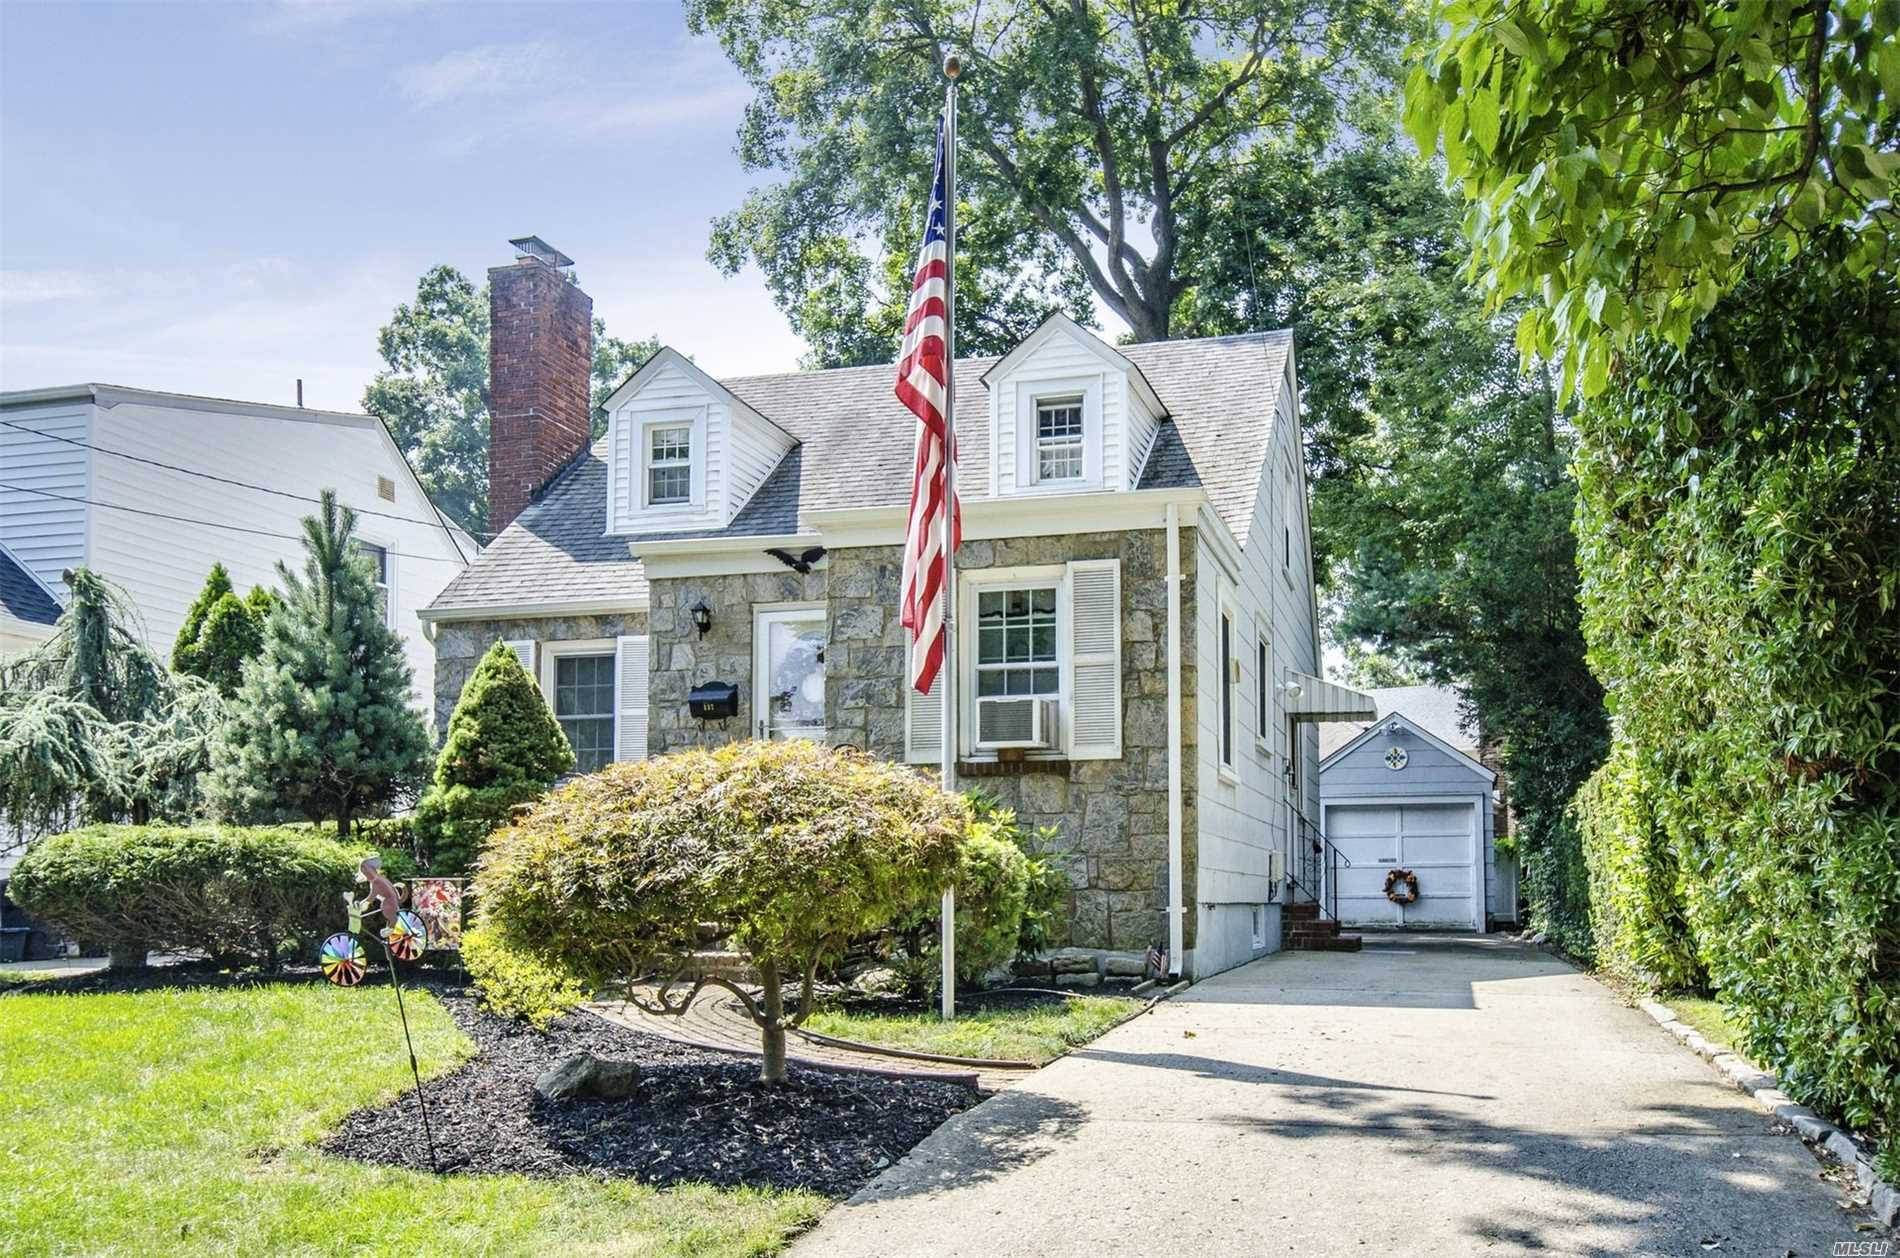 Beautiful Cape Cod Featuring Living Room W/Fireplace Hardwood Floors 3 Bedrooms 1.5 Baths Gas Heat 1 Car Detached Garage